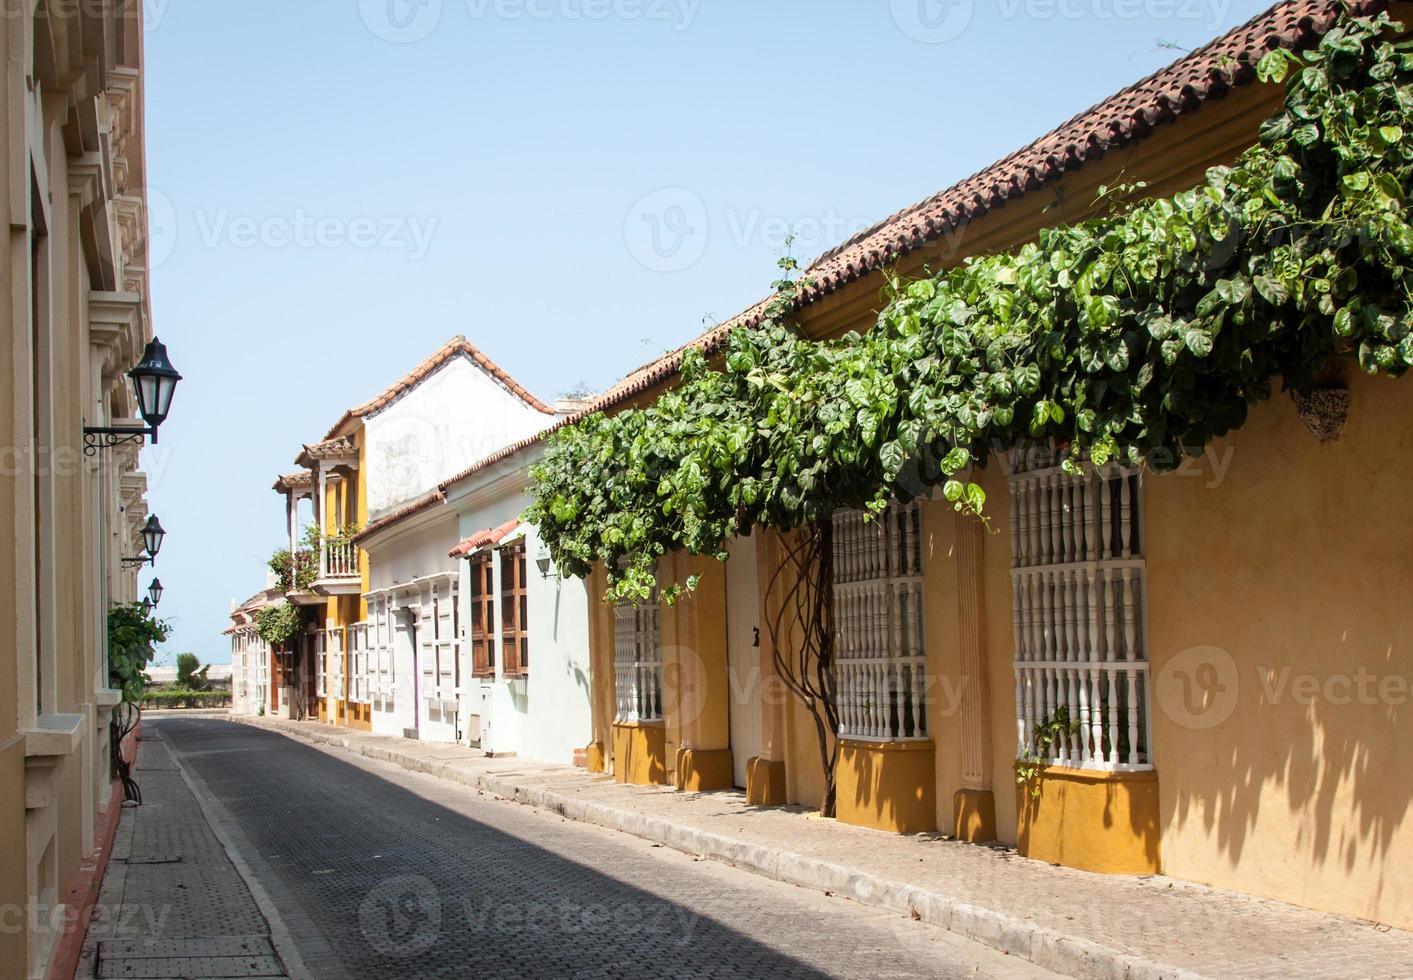 zijstraat in Cartagena, Colombia foto